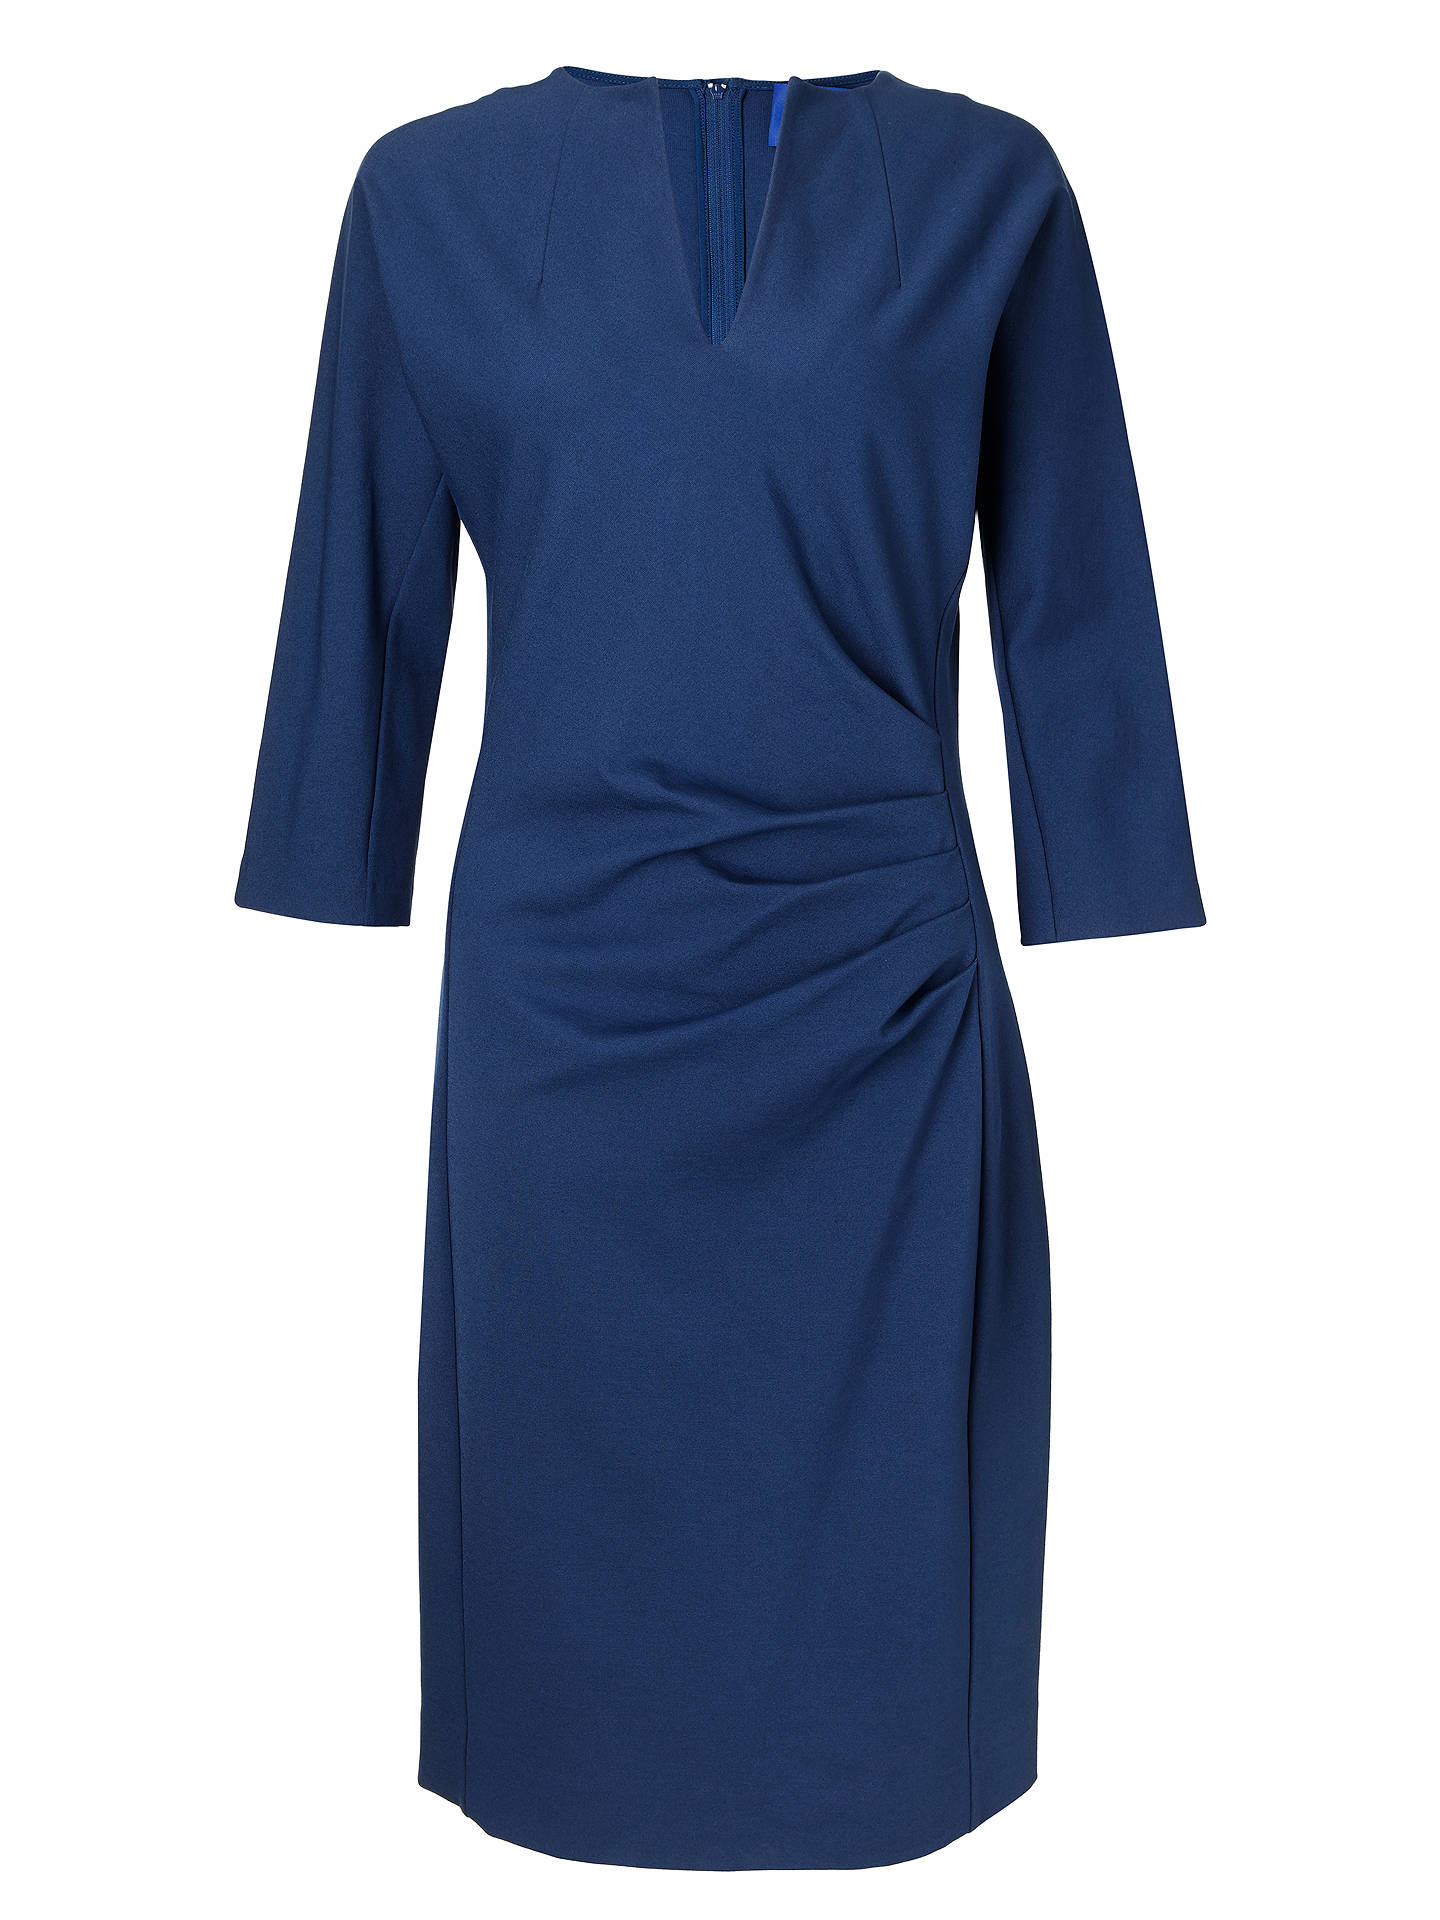 Buy Winser London V-Neck Lauren Miracle Dress, Rich Blue, 10 Online at johnlewis.com